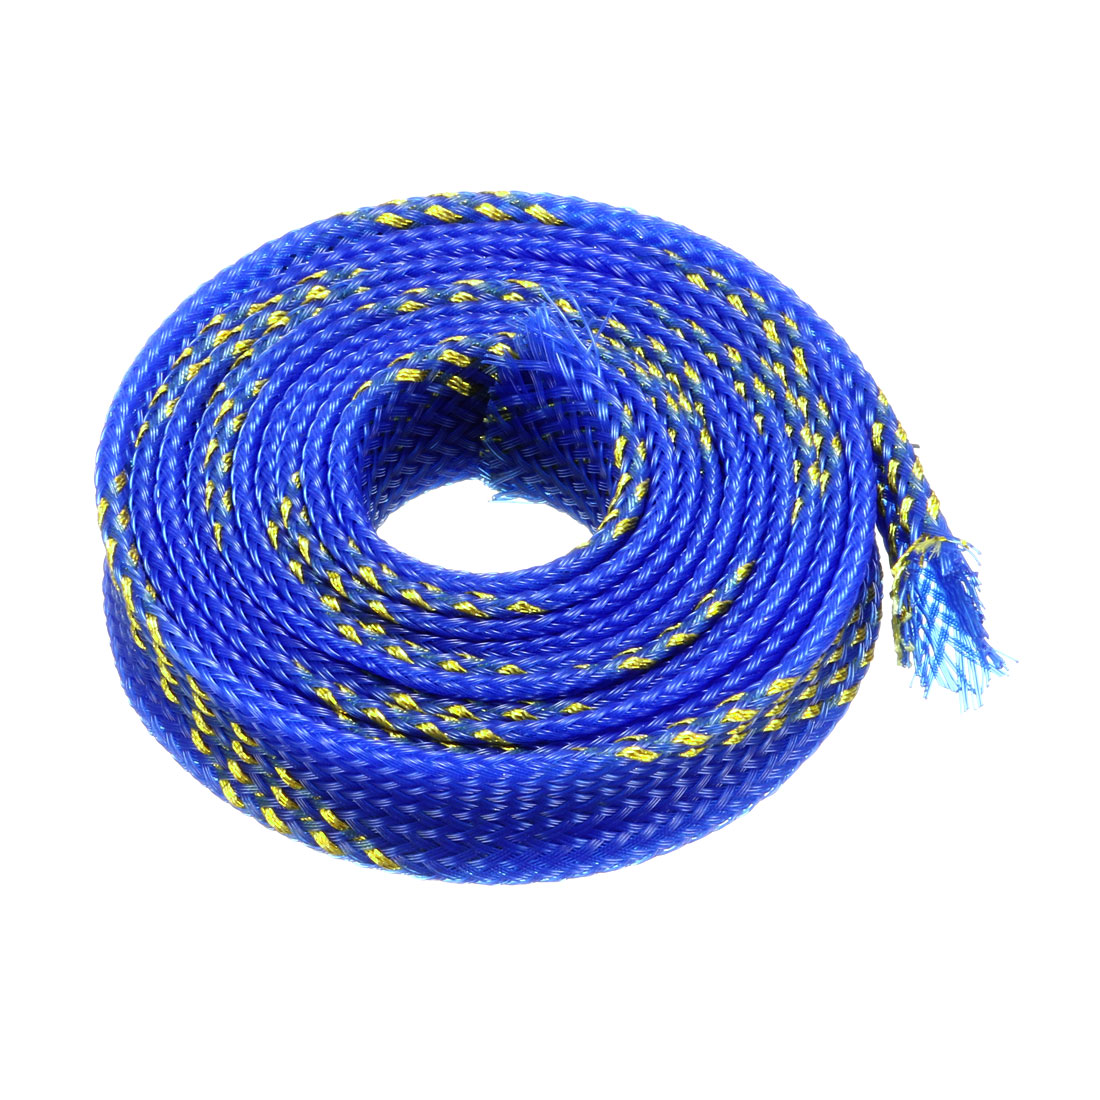 PET Braided Sleeving 3.3 Feet 1m Expandable Cable Wrap 10mm Diameter Wire Sheath Golden,Blue